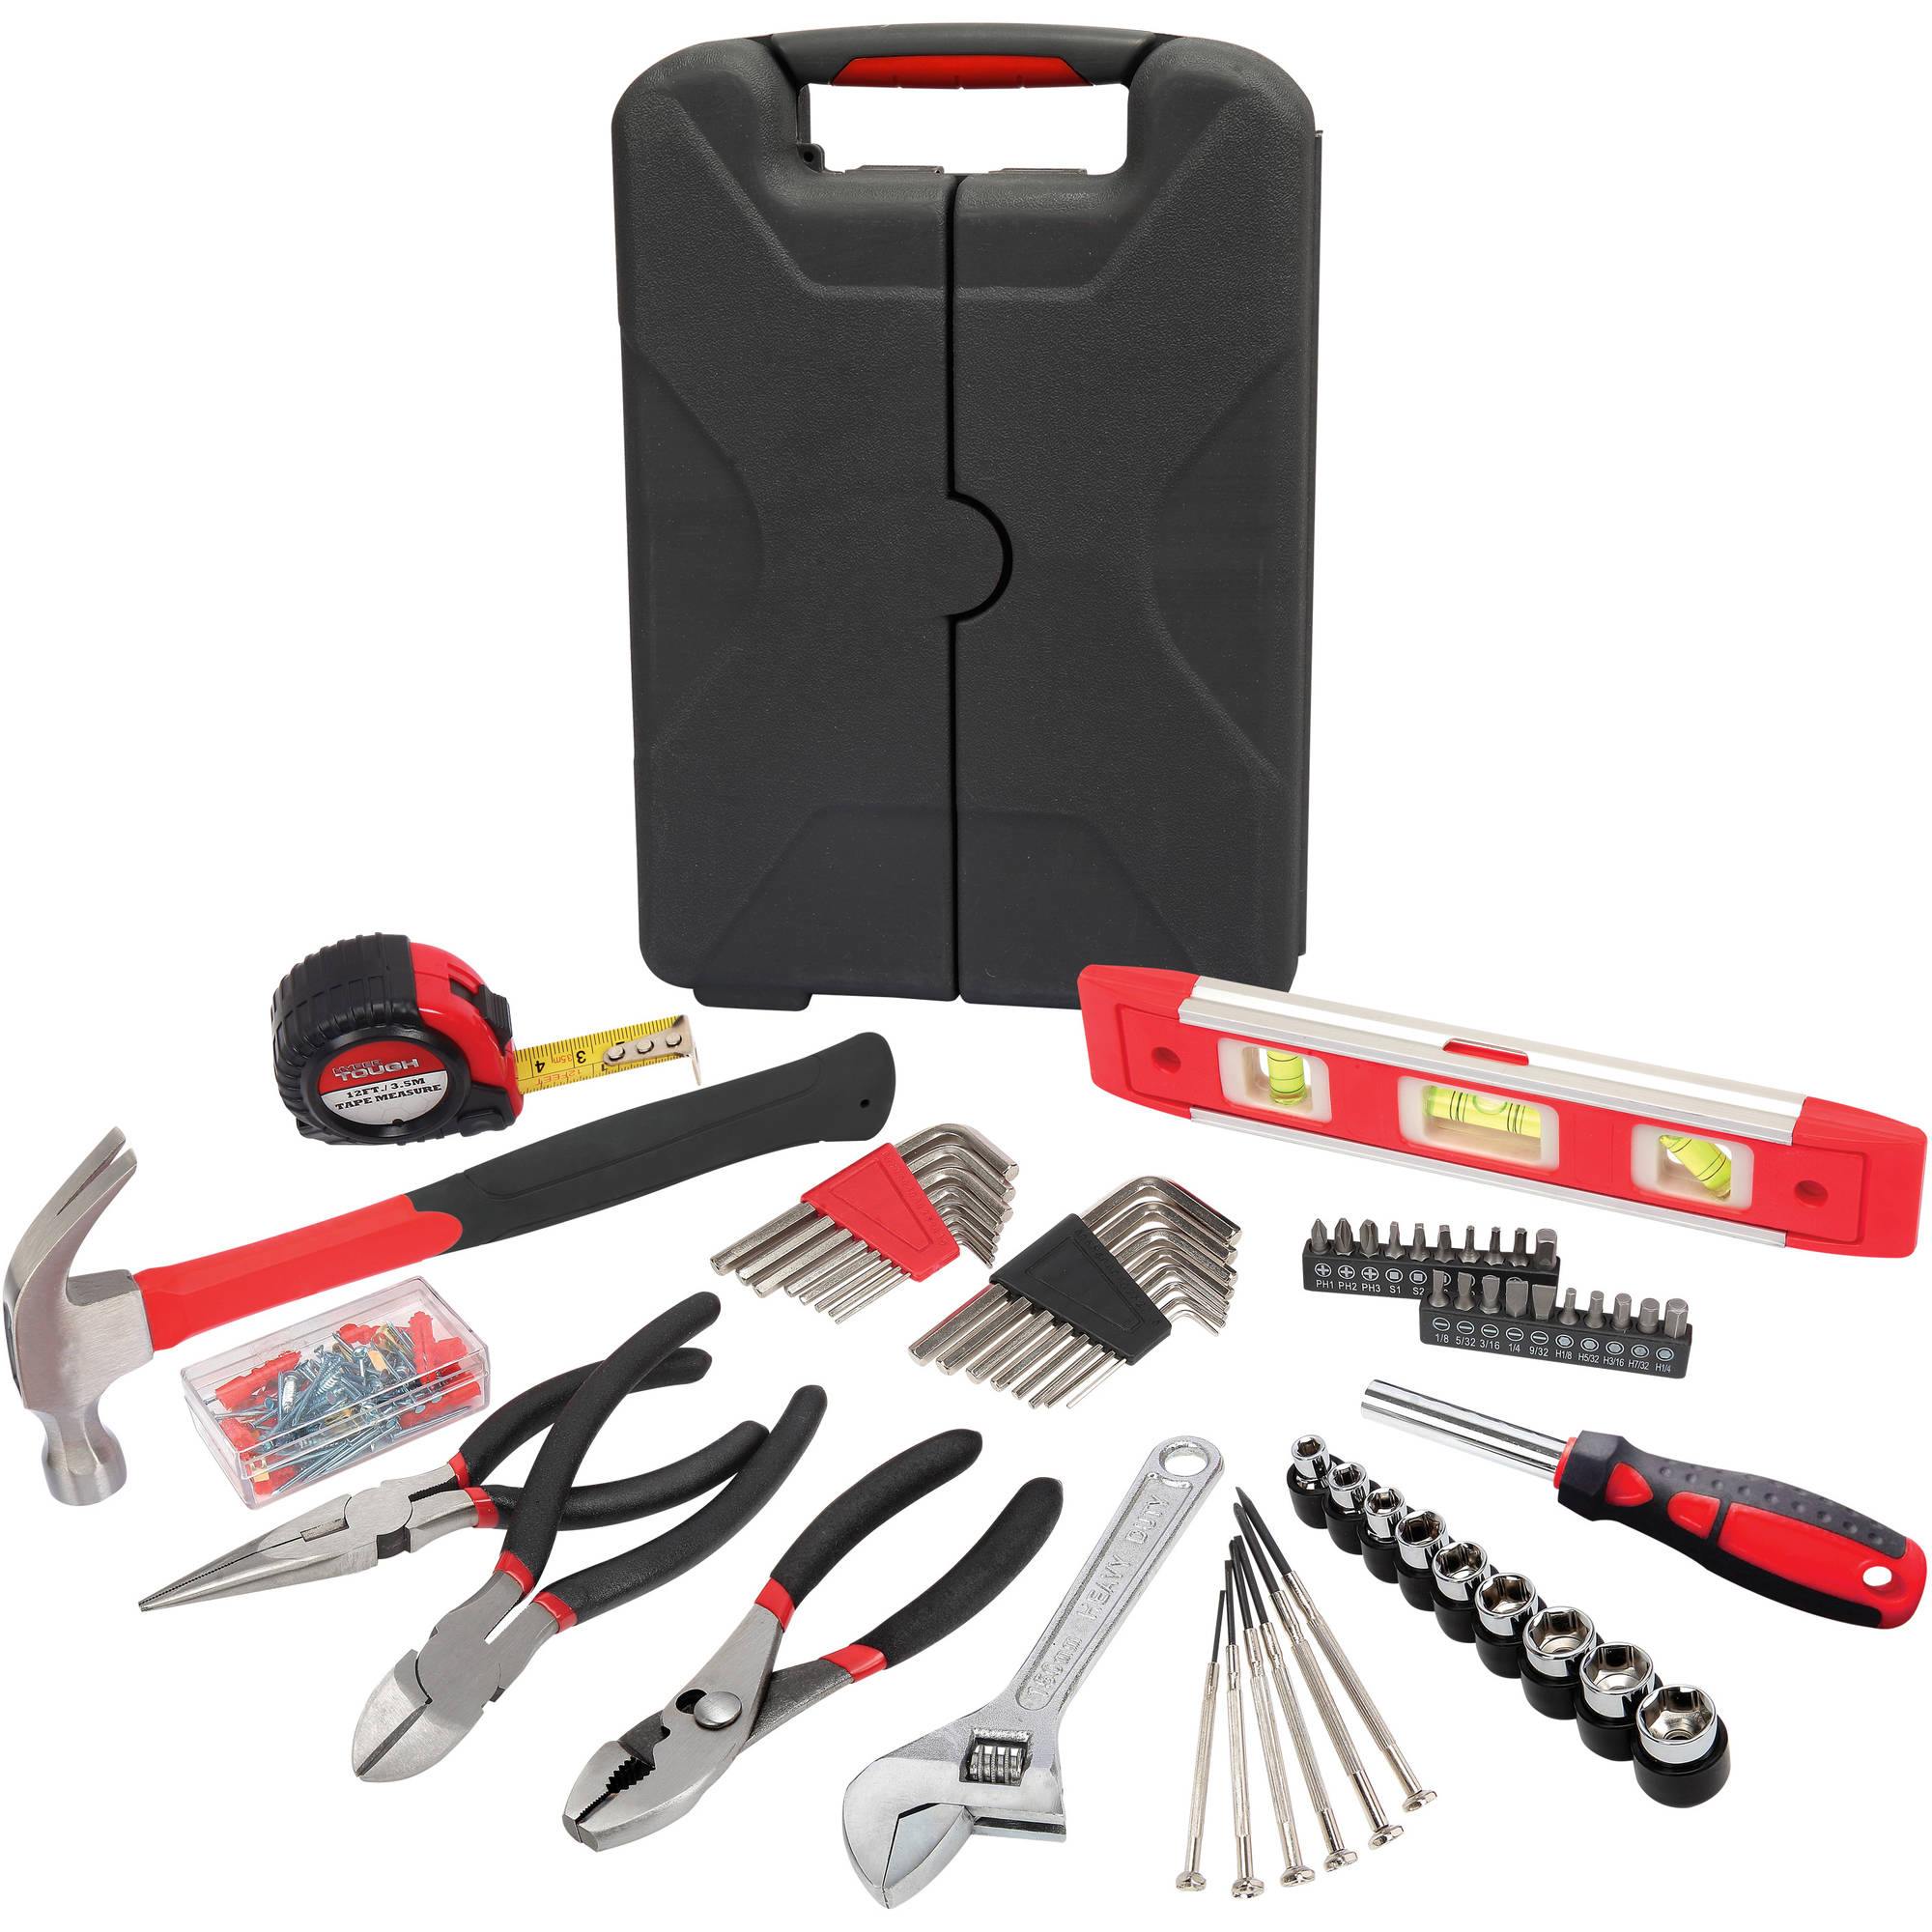 Hyper Tough 150-Piece Homeowner Tool Set